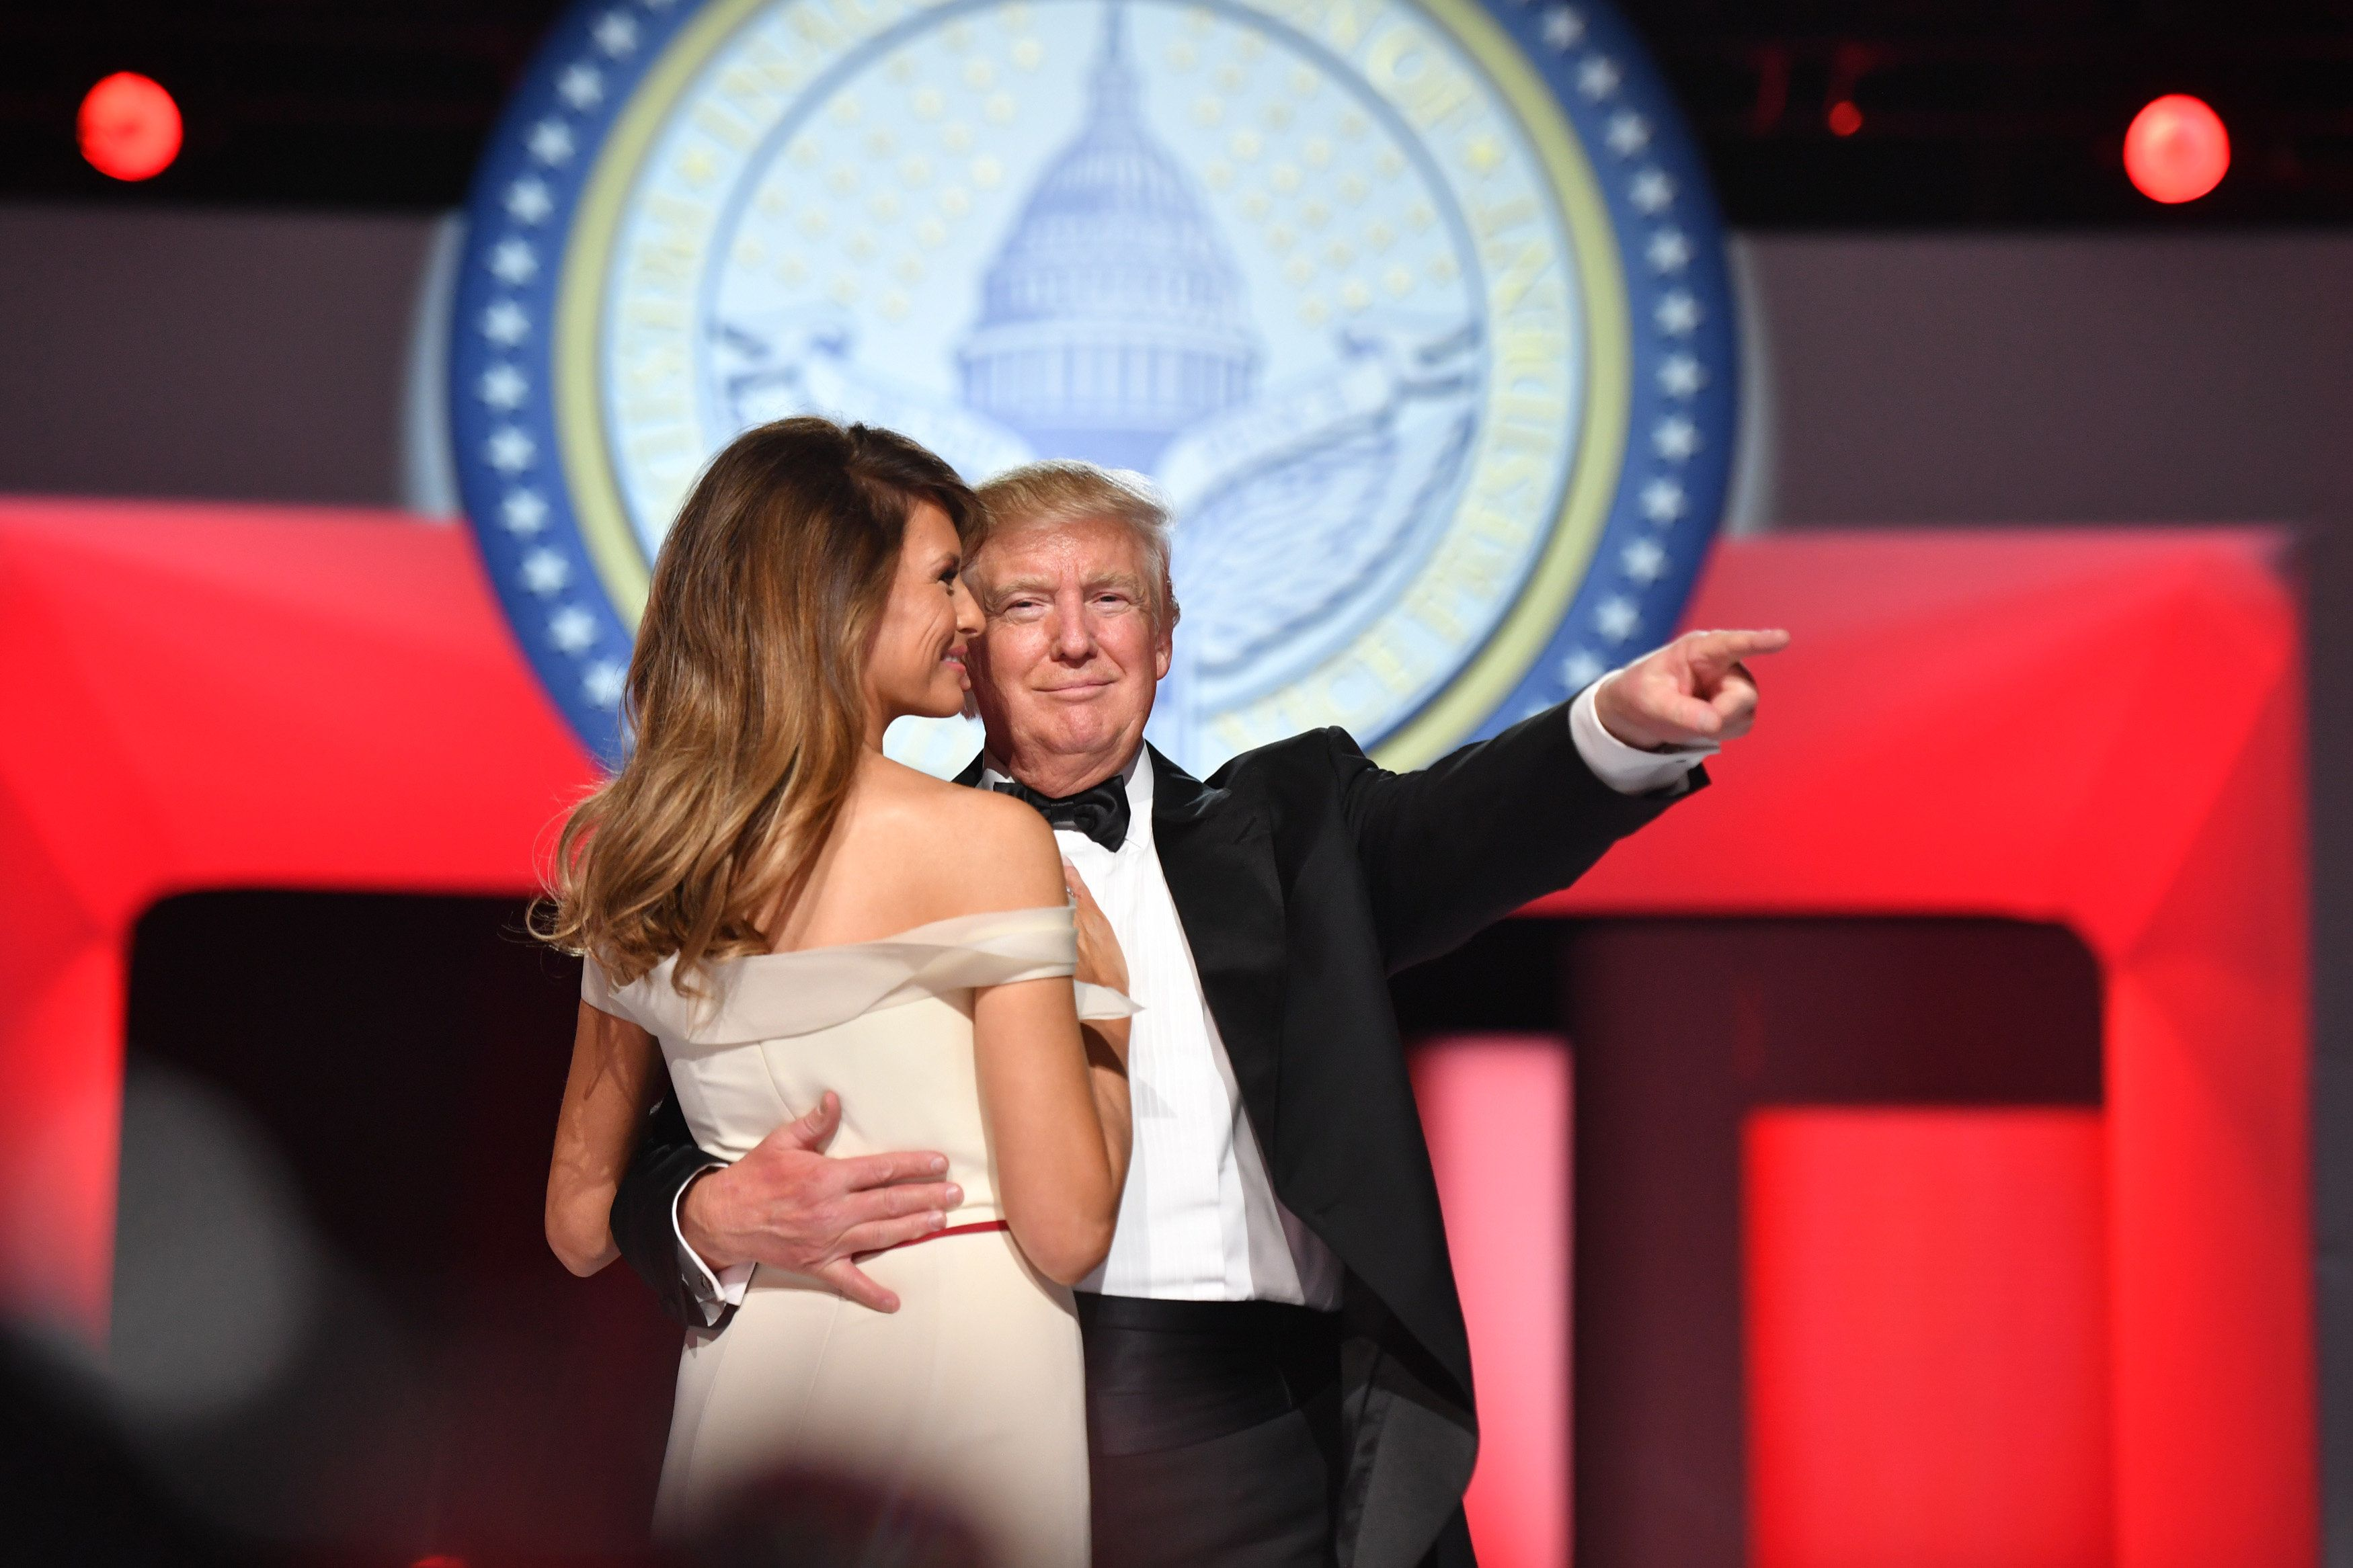 President Donald Trump dances with first lady Melania Trump at one of theinaugural balls in Washington on Jan. 20, 2017